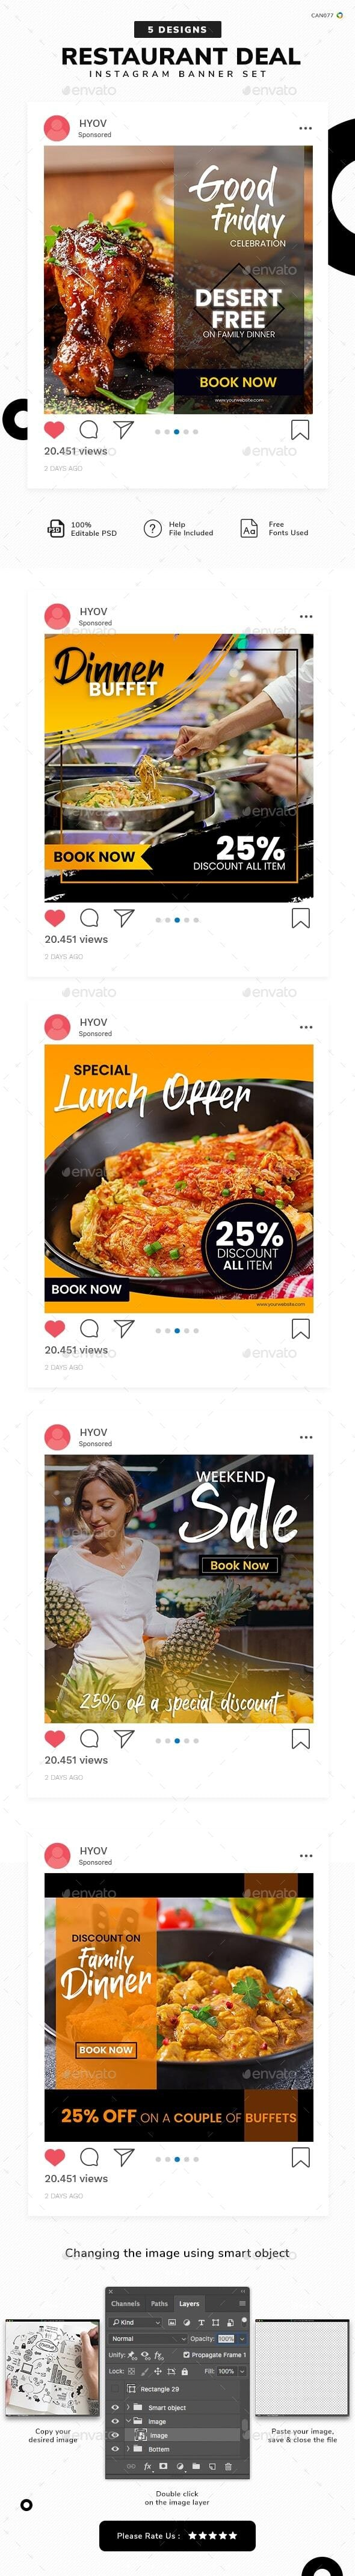 Restaurant Deals Instagram Post Templates - 05 Designs - Miscellaneous Social Media